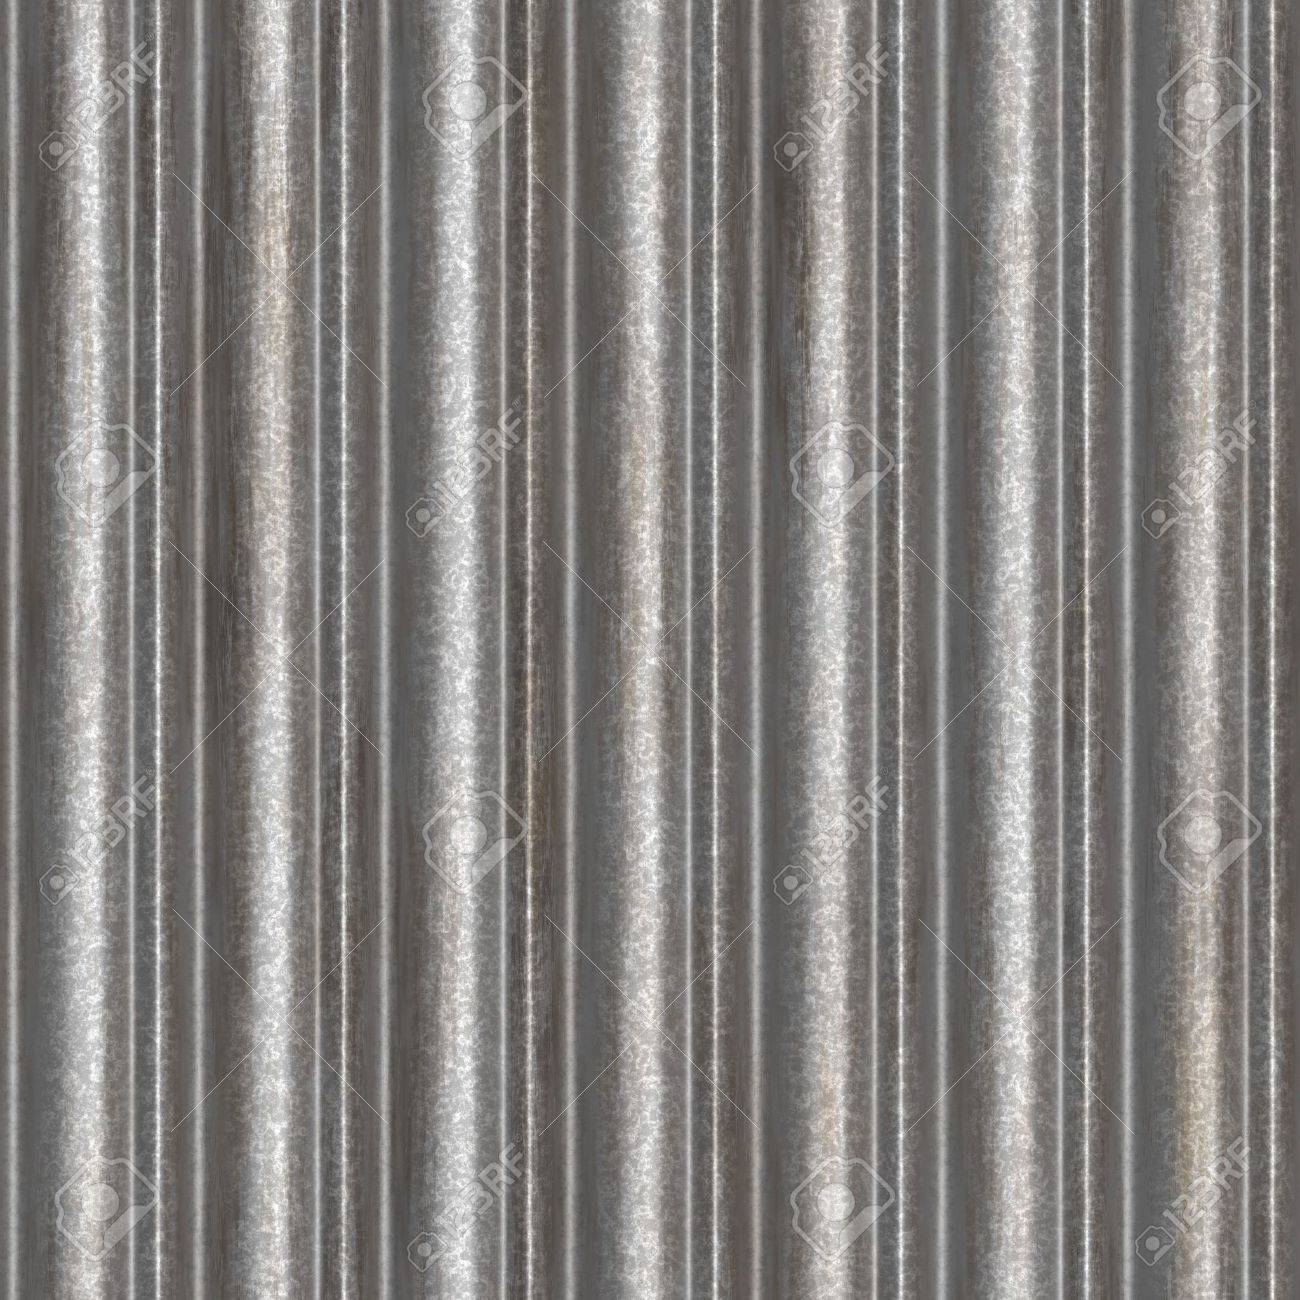 A corrugated metal texture that tiles seamlessly as a pattern Makes a great  background or. Corrugated Metal Seamless Texture